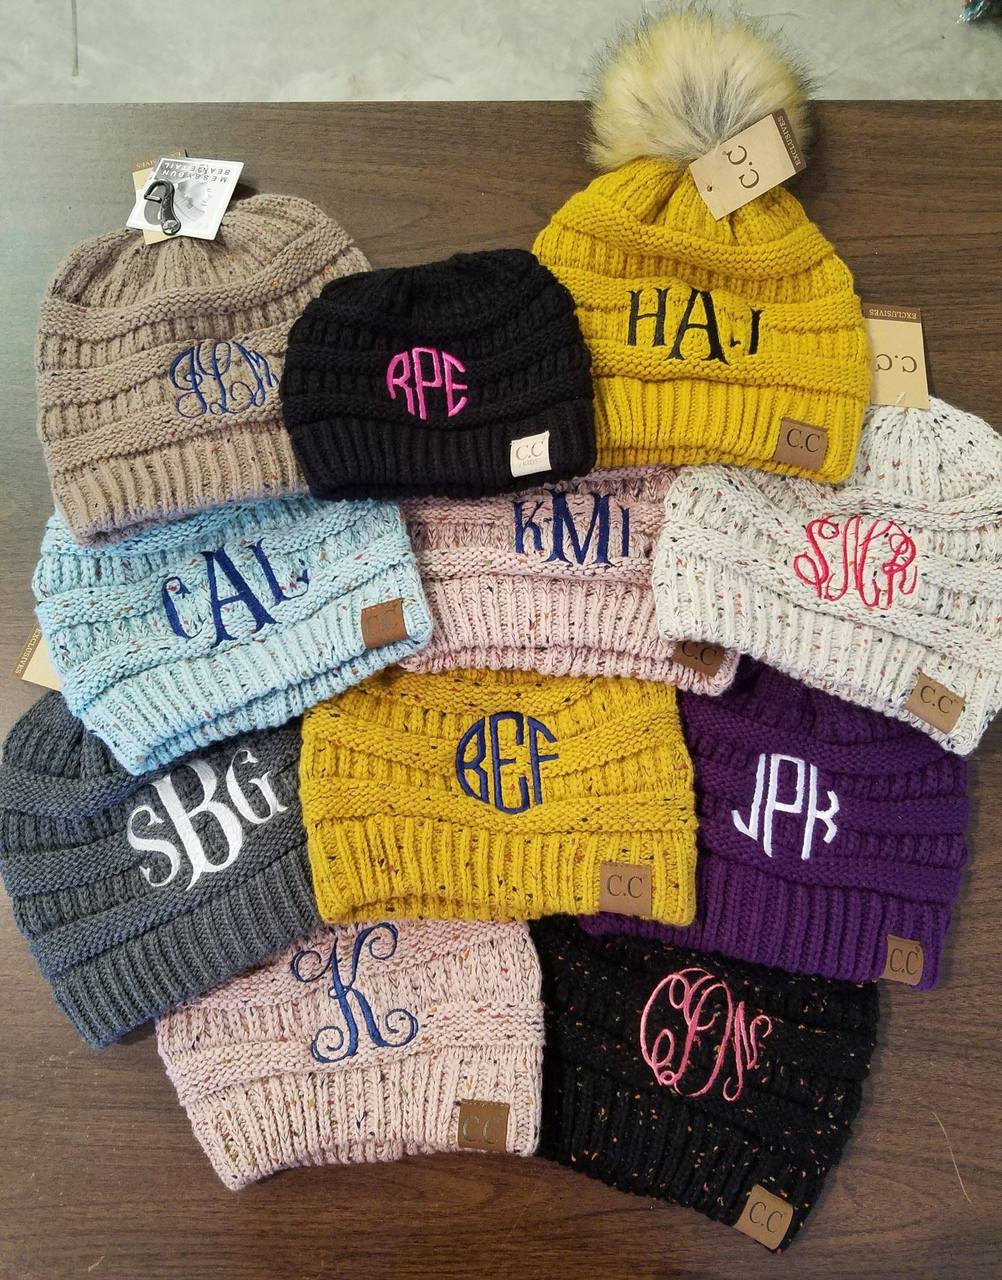 C C Monogram Only For Headwrap Or Beanie Girls Round Here